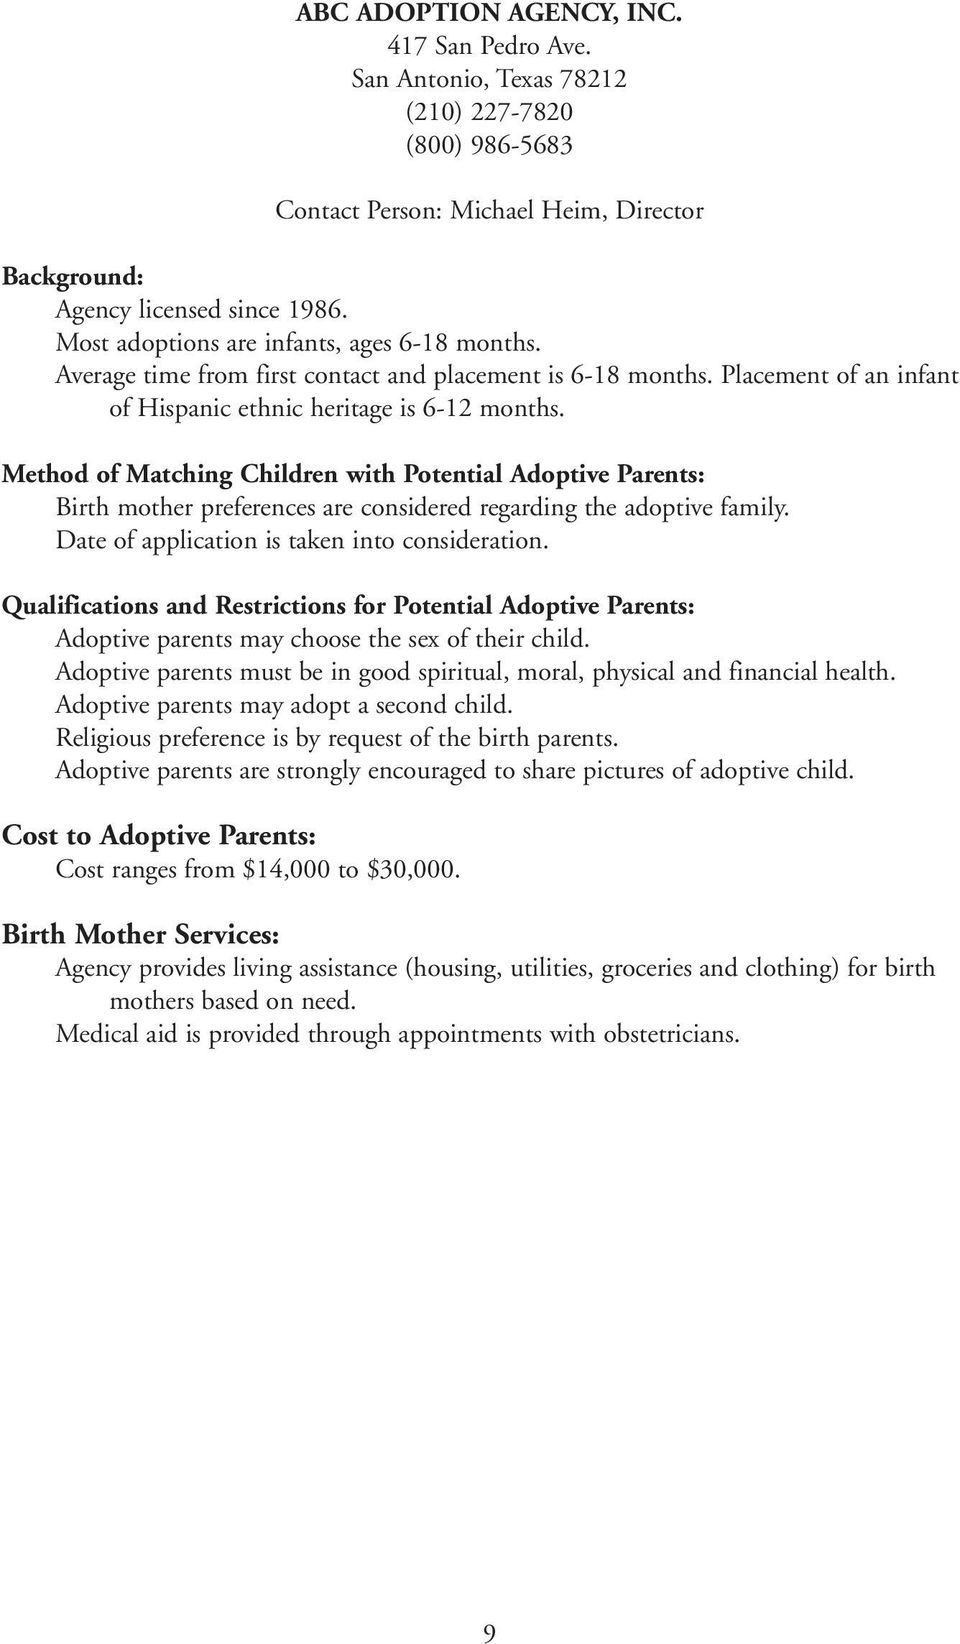 Method of Matching Children with Potential Adoptive Parents: Birth mother preferences are considered regarding the adoptive family. Date of application is taken into consideration.